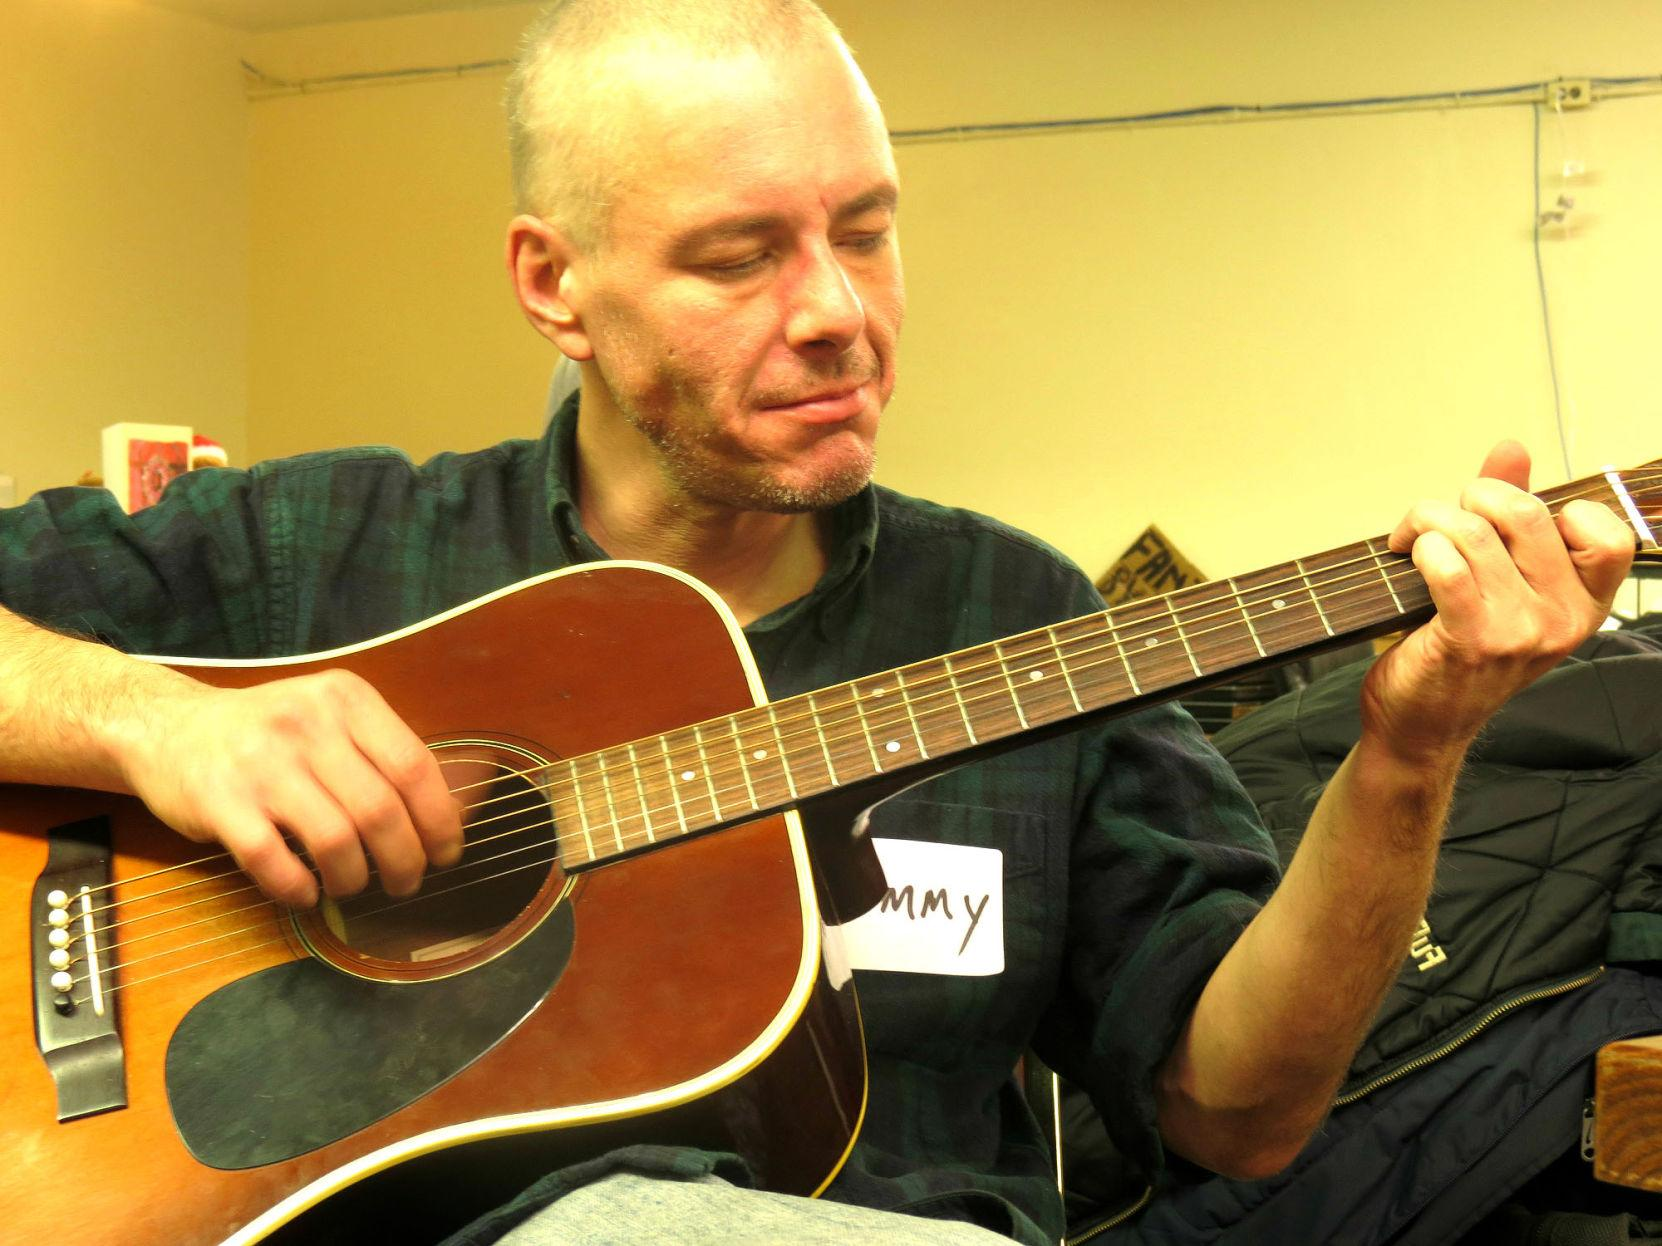 Tommy, a guest at The Phoenix, strums his guitar in the recreation room of the drop-in center on Dec. 16.